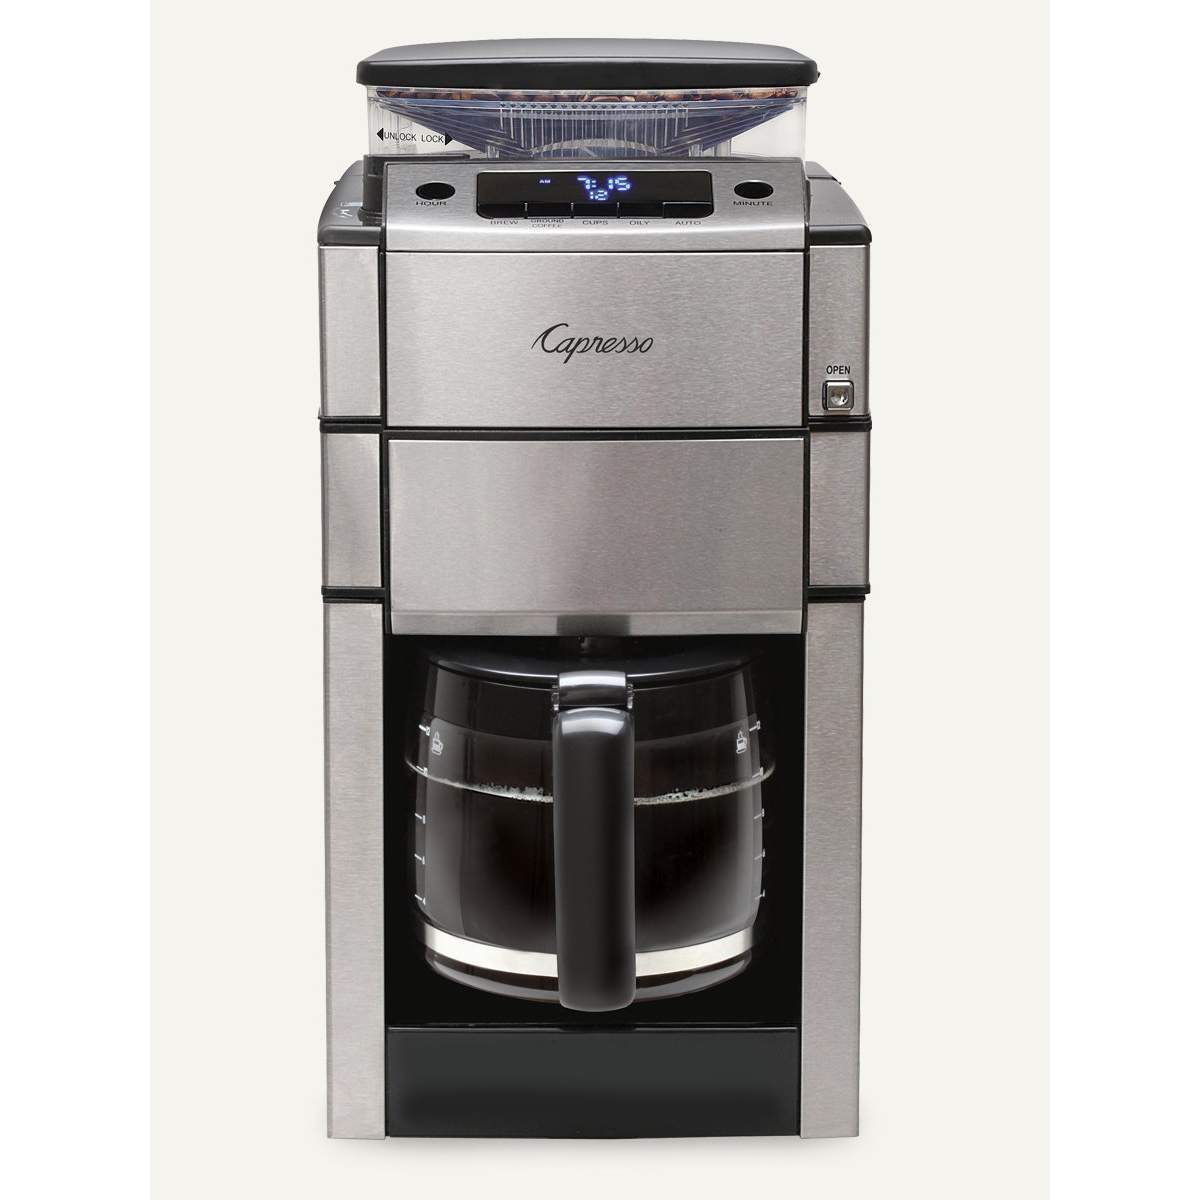 capresso coffeeteam pro plus with thermal carafe coffee maker - Thermal Carafe